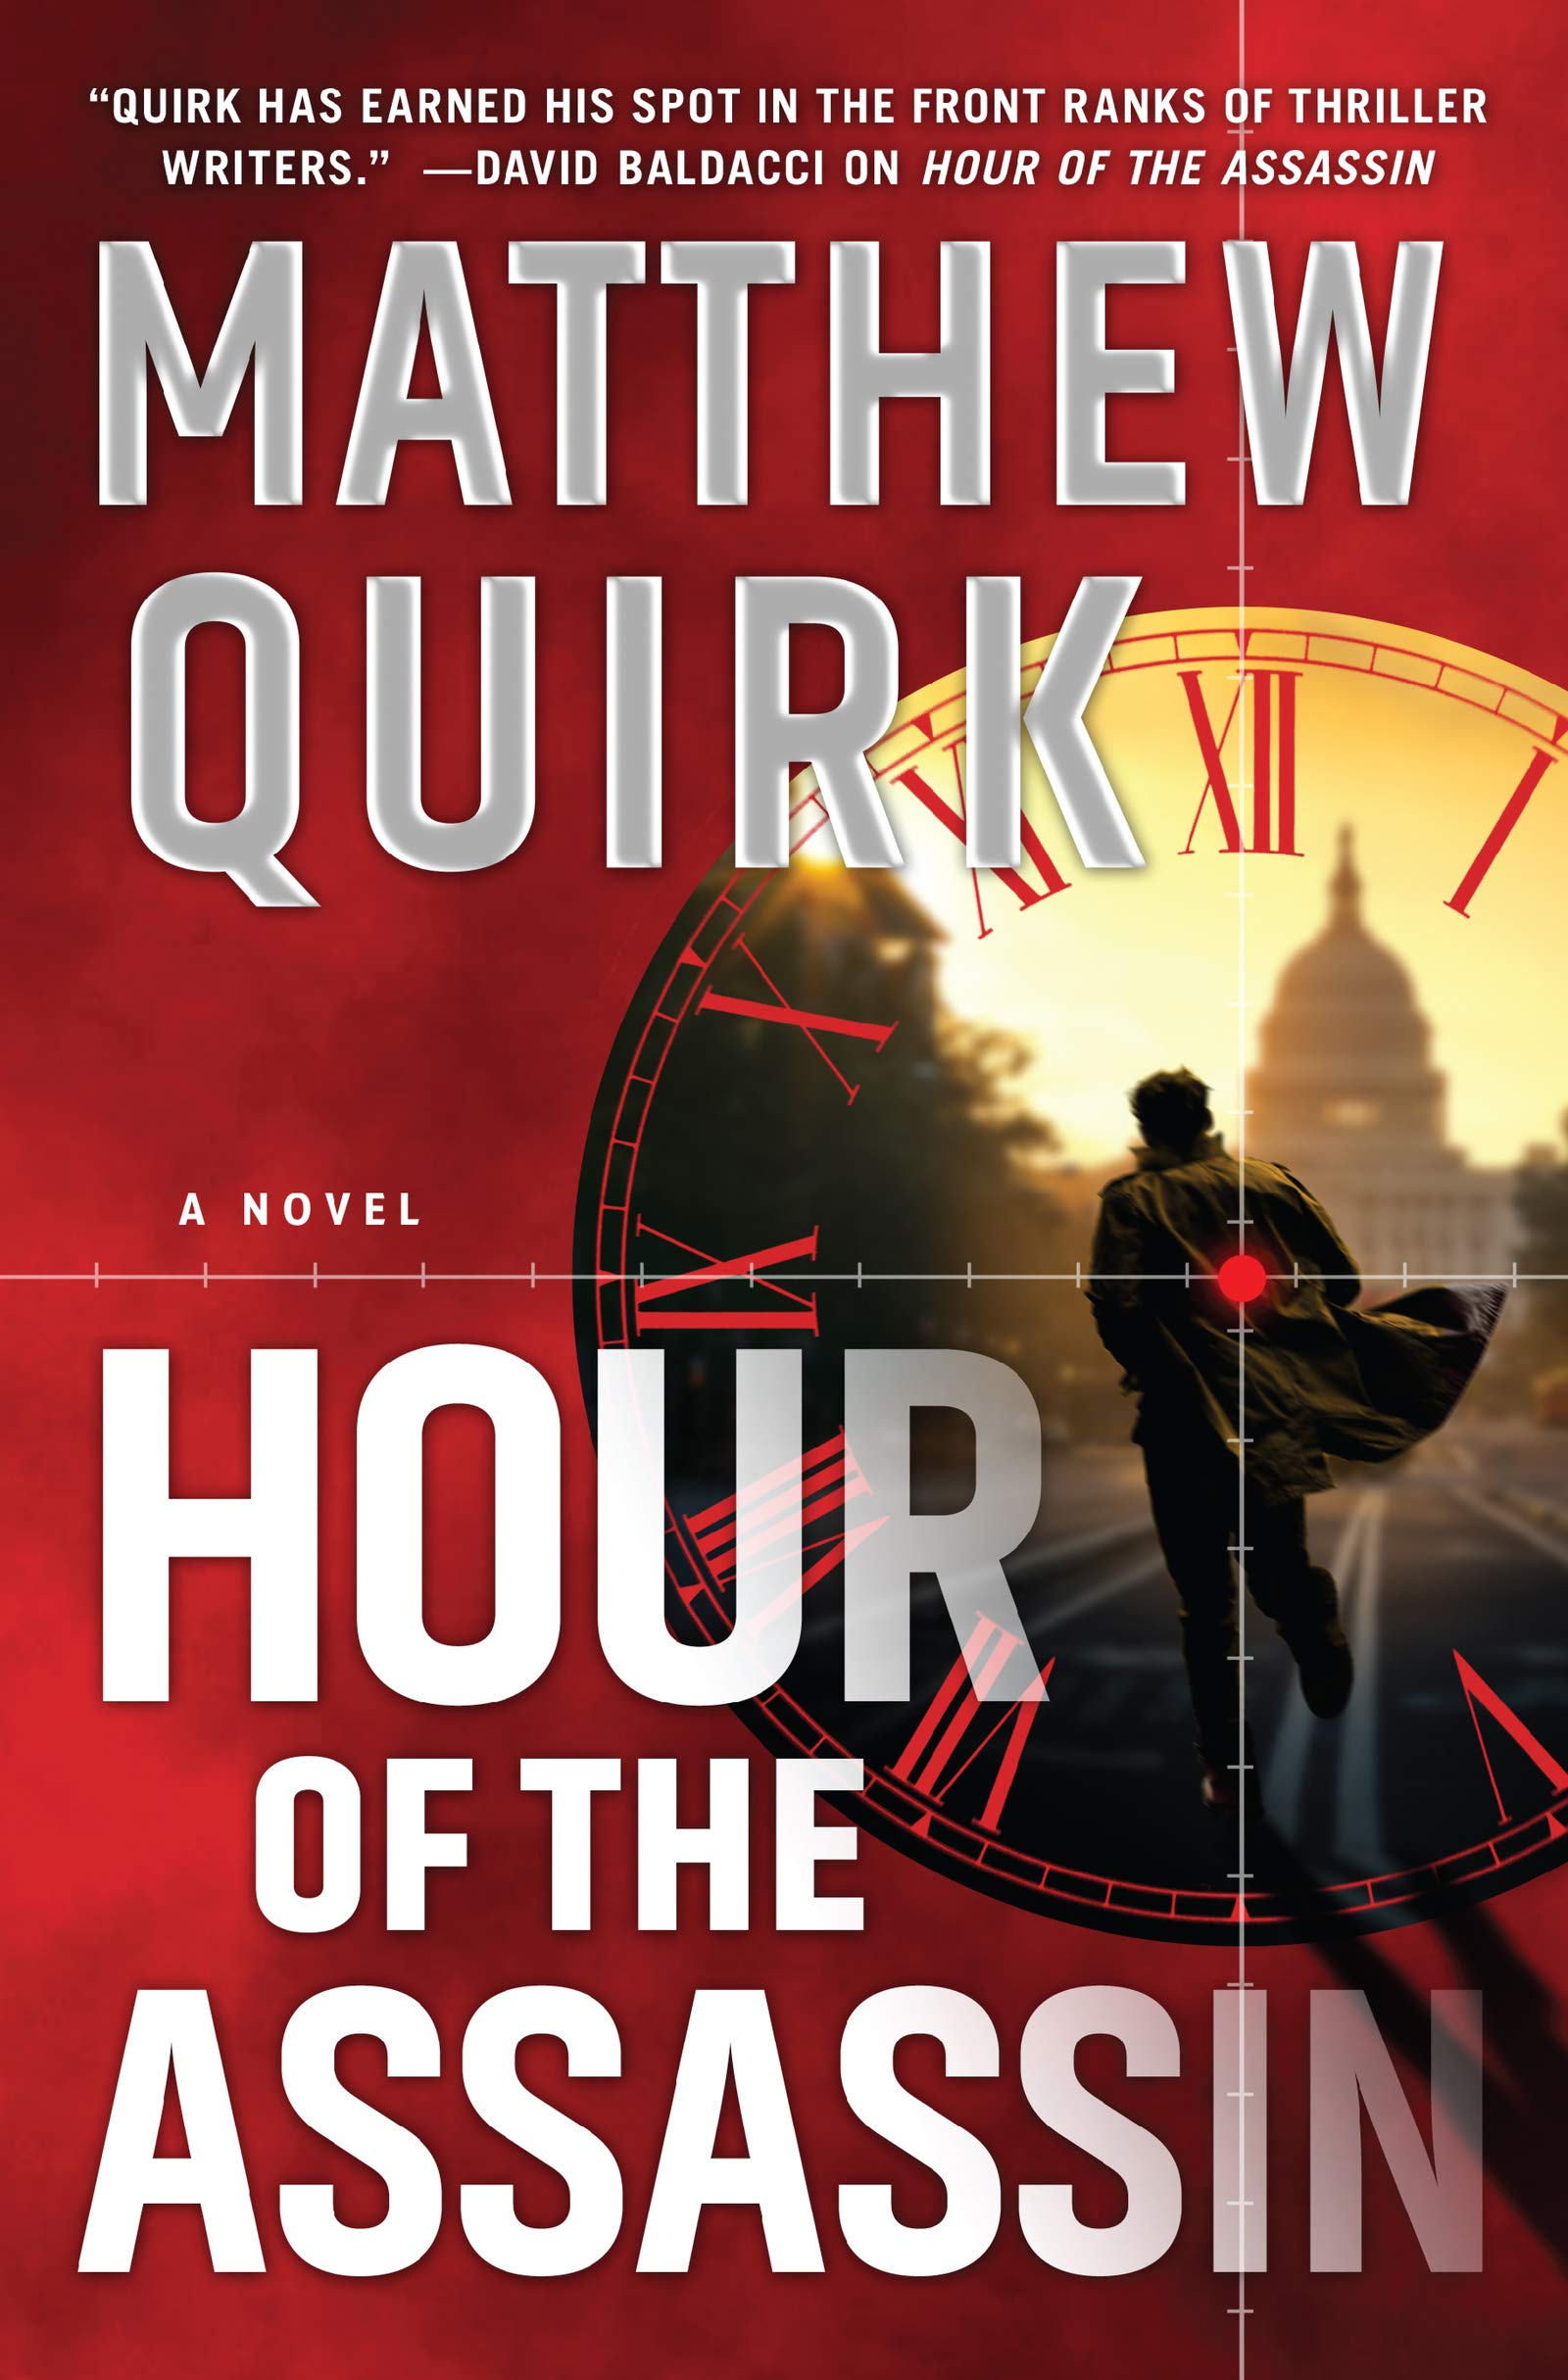 Hour of the Assassin: A Novel